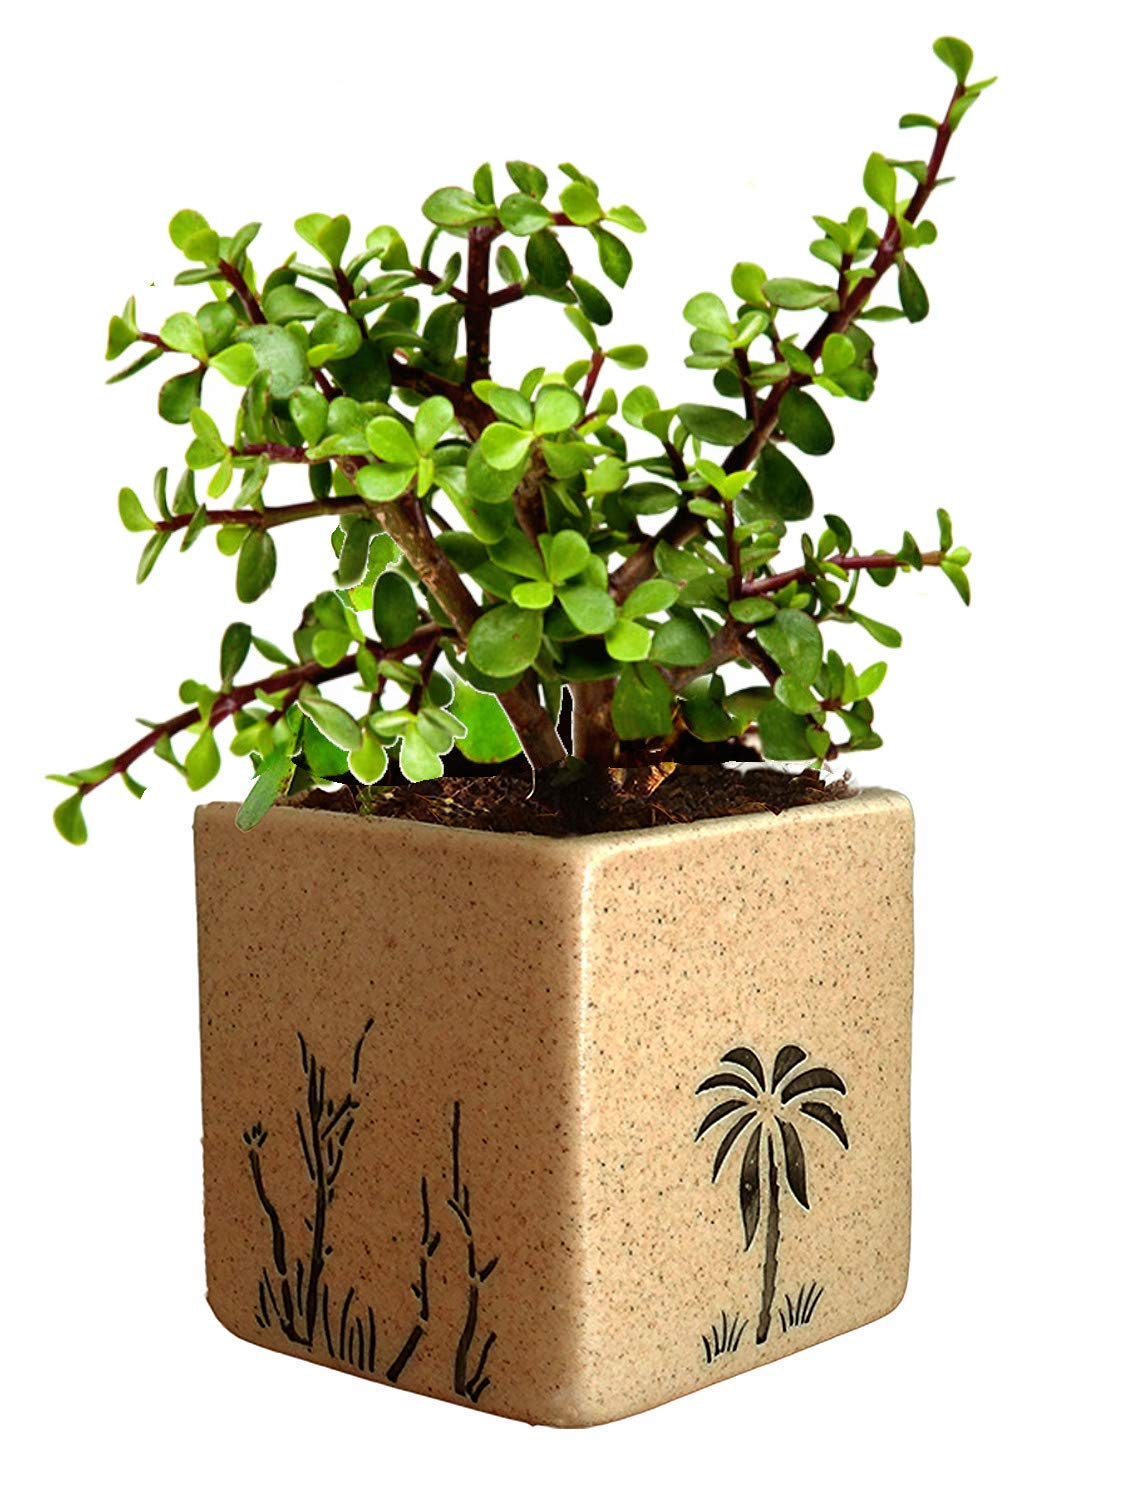 Amazon price history for Abana Homes Beautiful Good Luck Jade Plant with Ceramic Pot